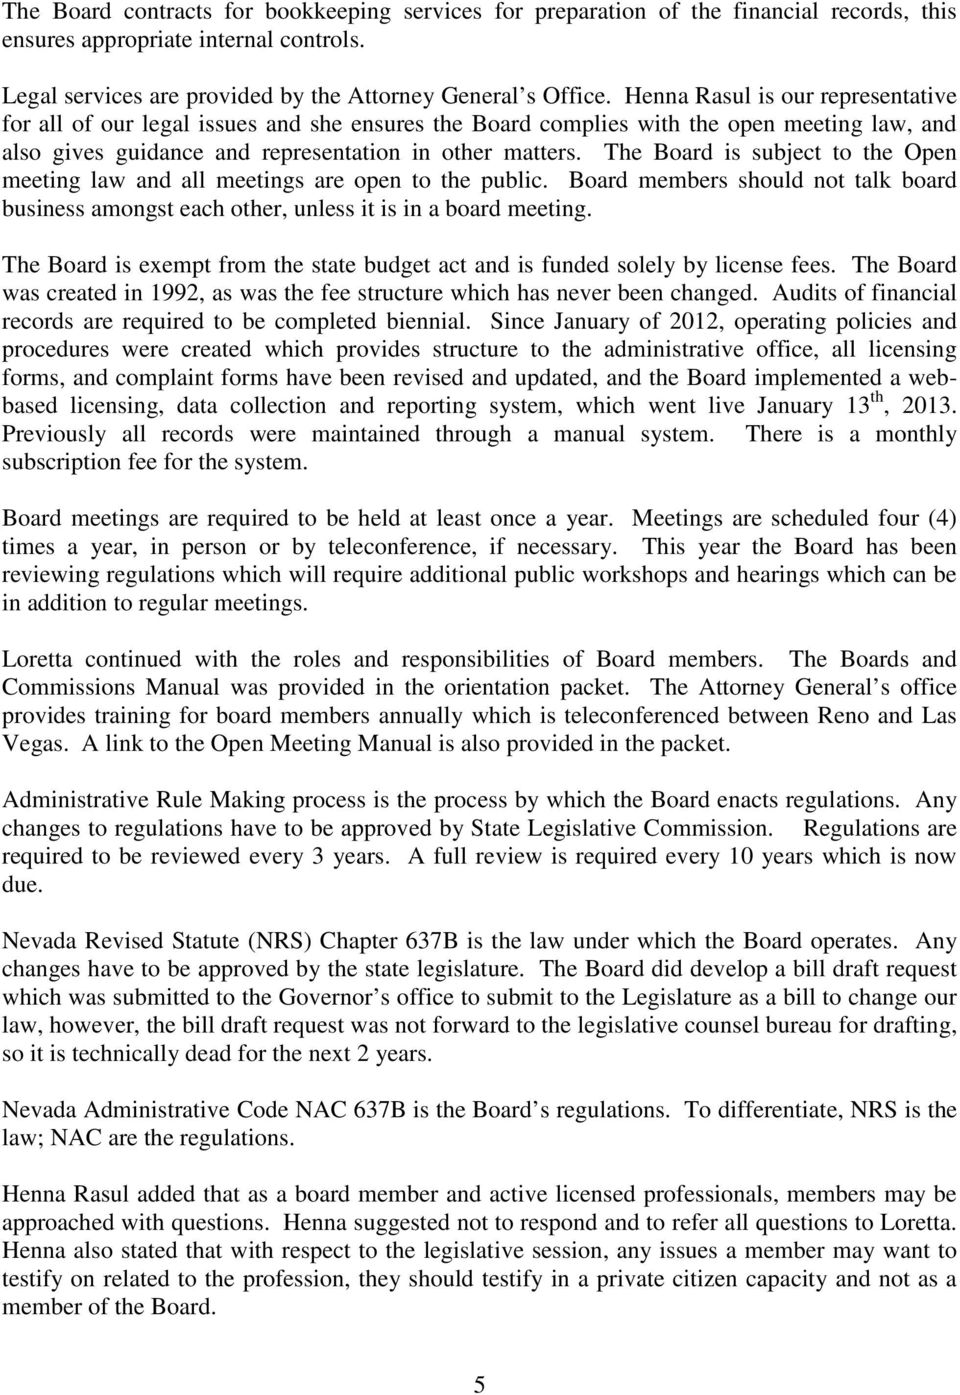 The Board is subject to the Open meeting law and all meetings are open to the public. Board members should not talk board business amongst each other, unless it is in a board meeting.